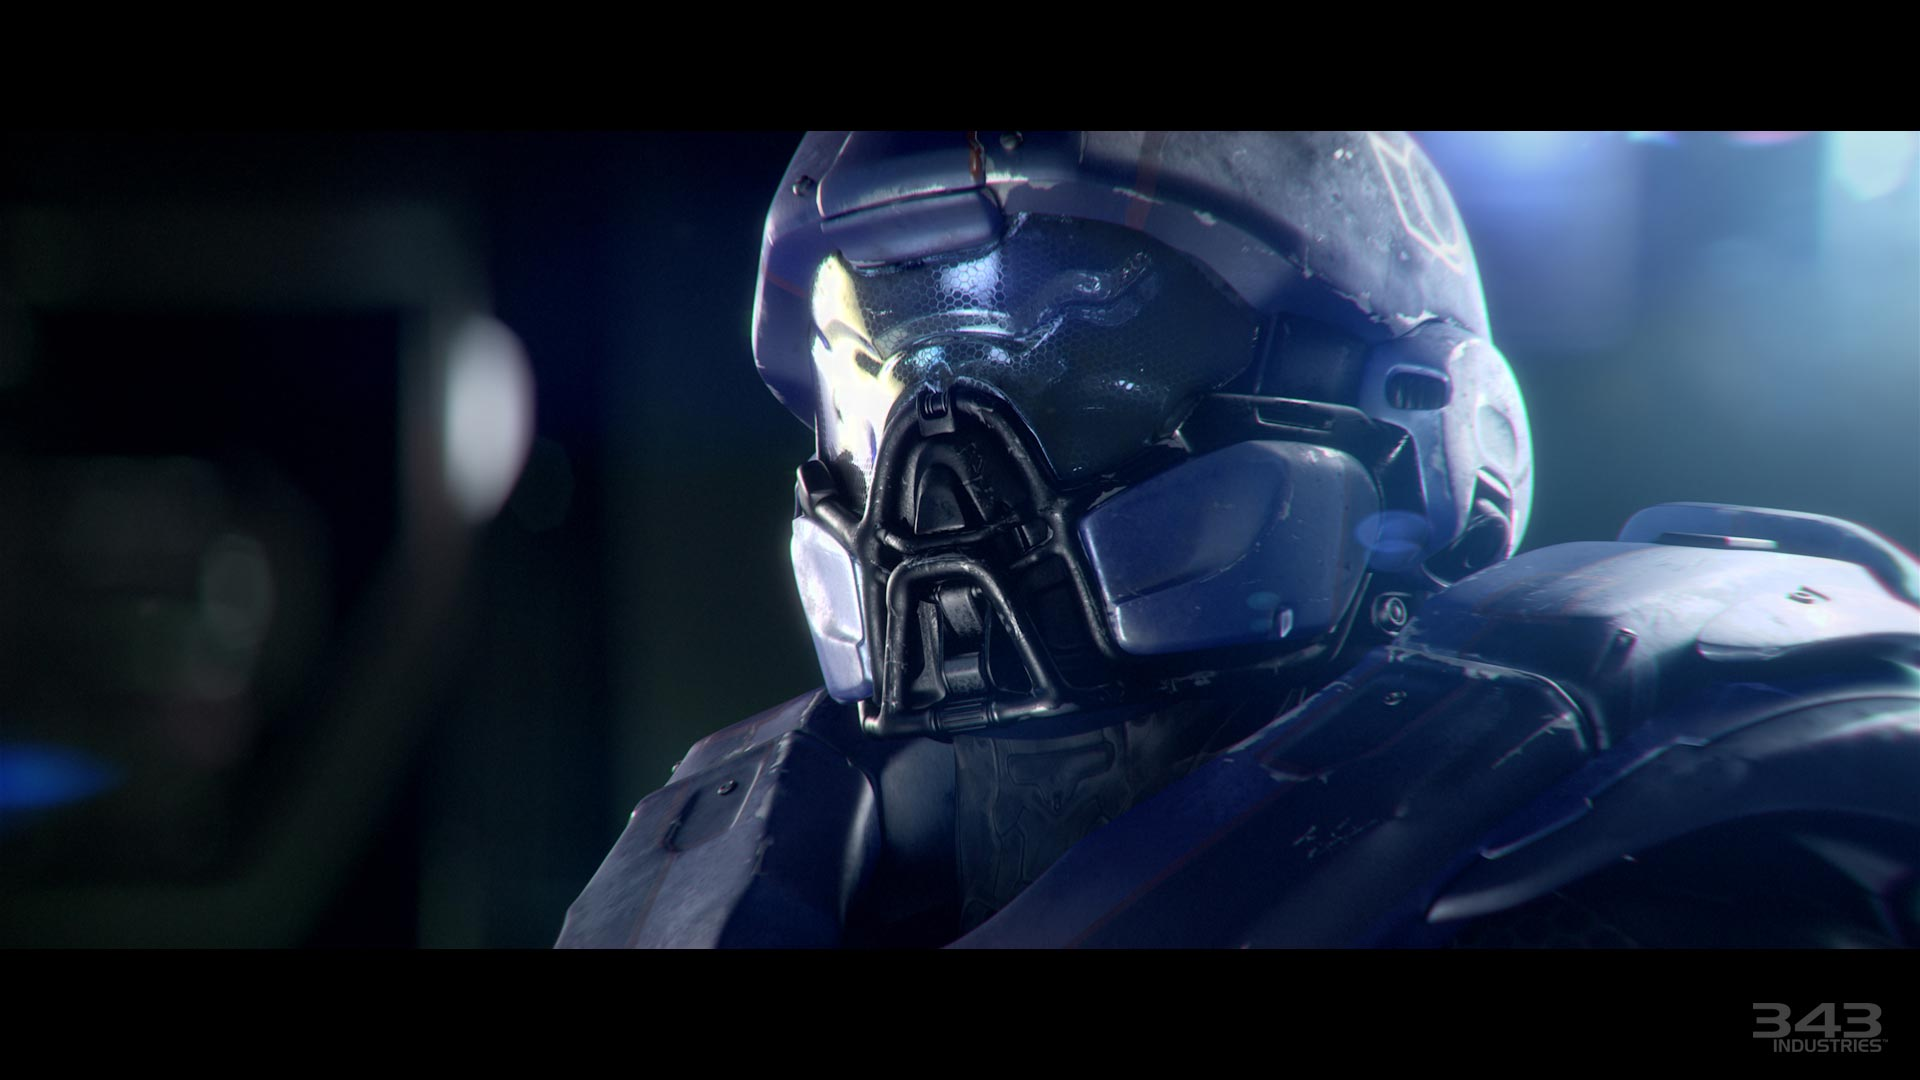 Halo 5 Guardians Video Game 21 Hd Wallpaper   Hivewallpapercom 1920x1080